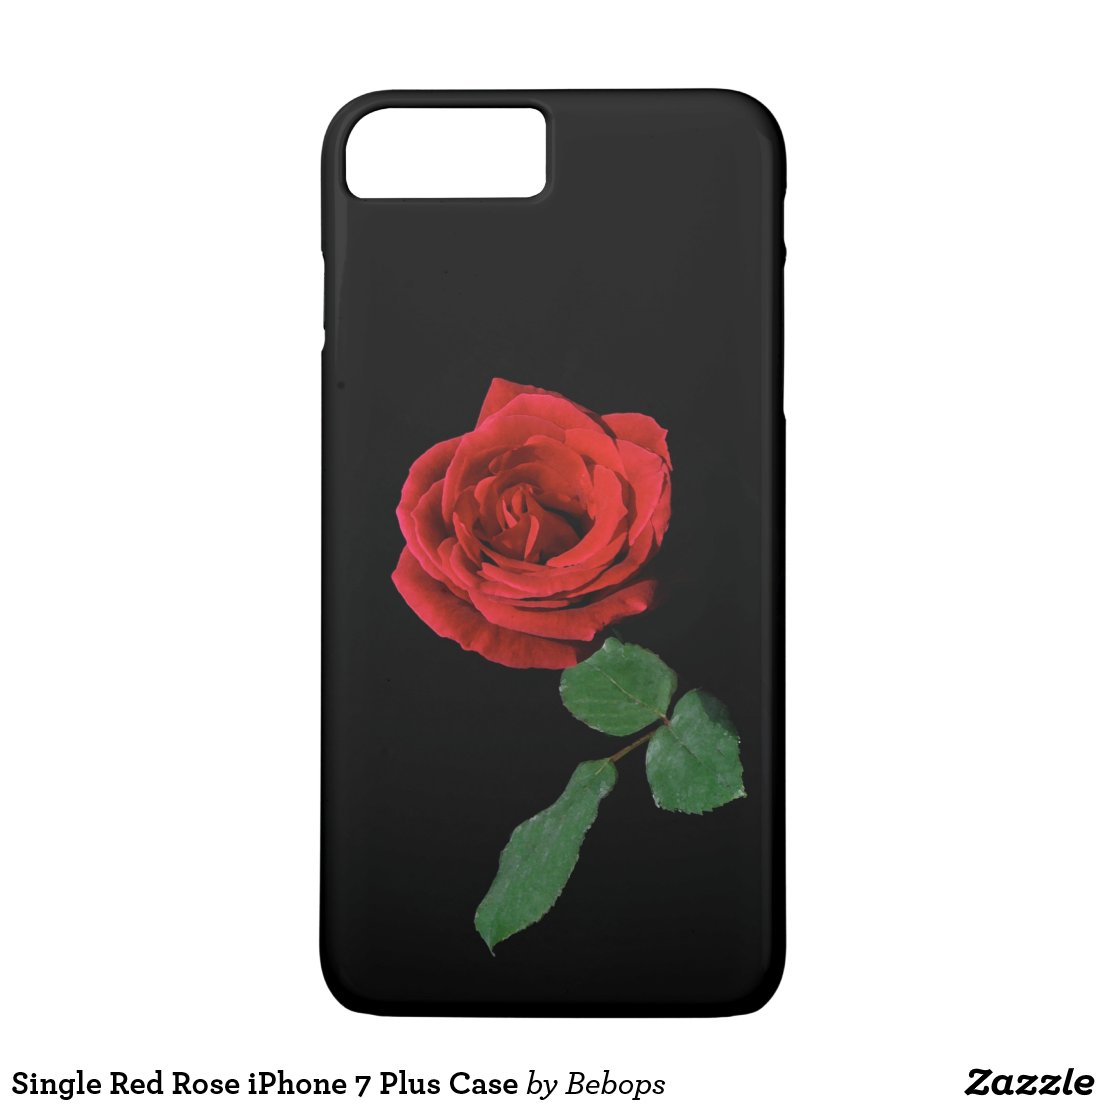 Single Red Rose iPhone 7 Plus Case